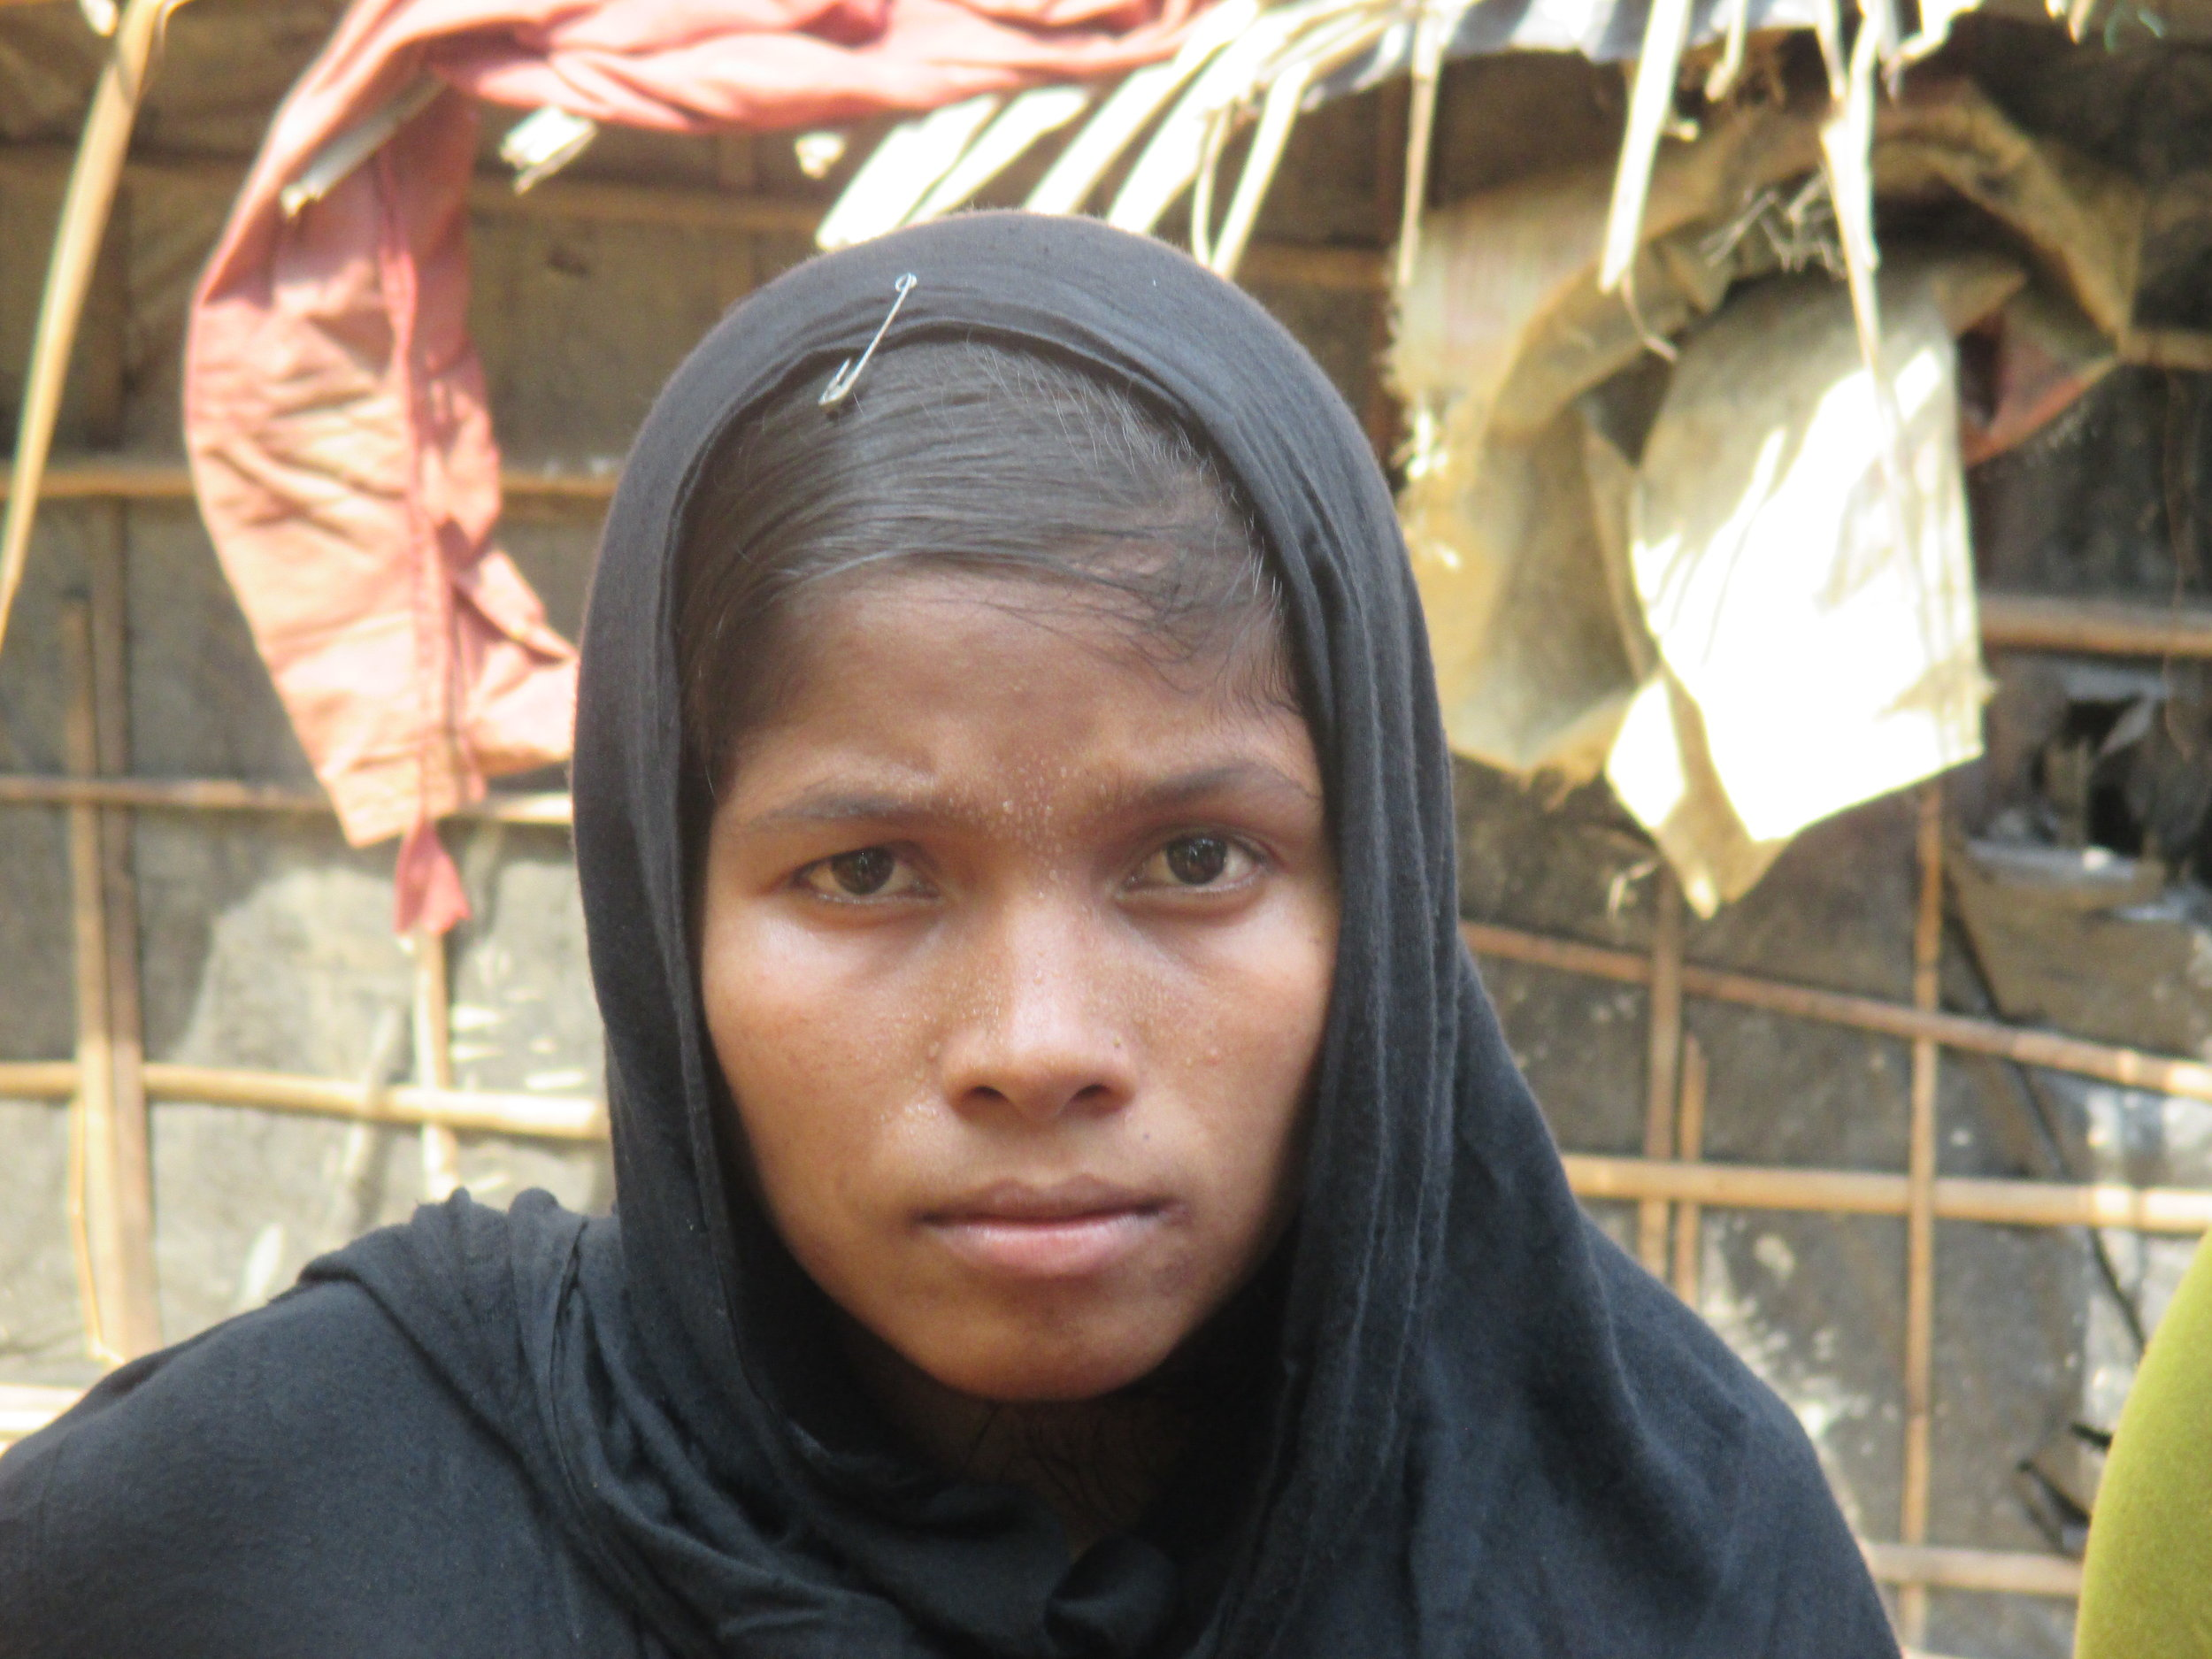 """For those Rohingya who fled since October, the memory of recent abuses is fresh. Farida*, 20, fled her village in Maungdaw five months ago. """"My neighbors were raped,"""" she said, """"As a young girl, I worried too much. I did not feel safe to stay."""""""